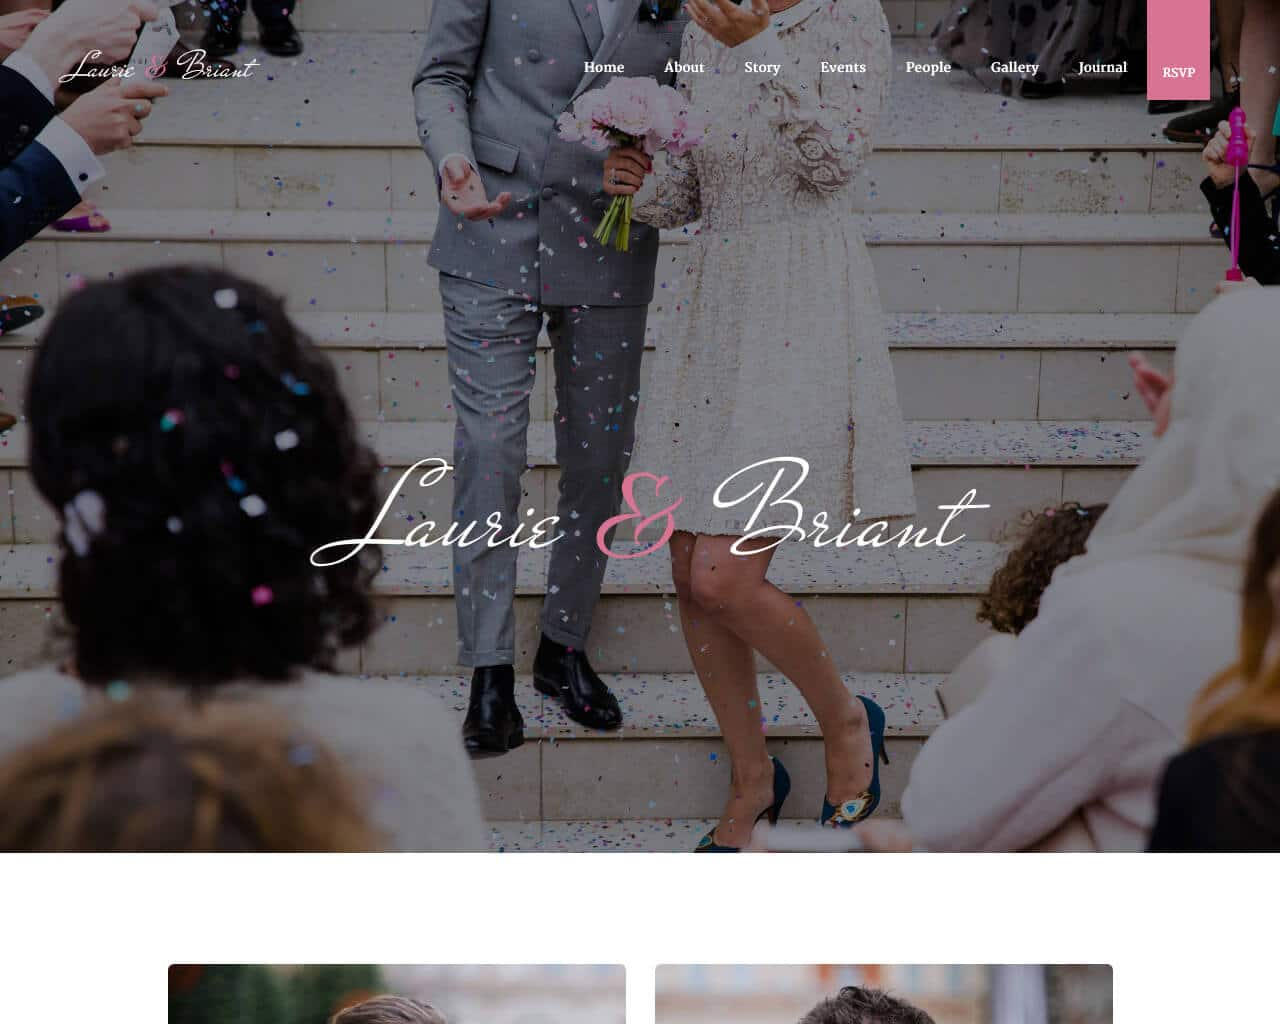 Lovus Website Template